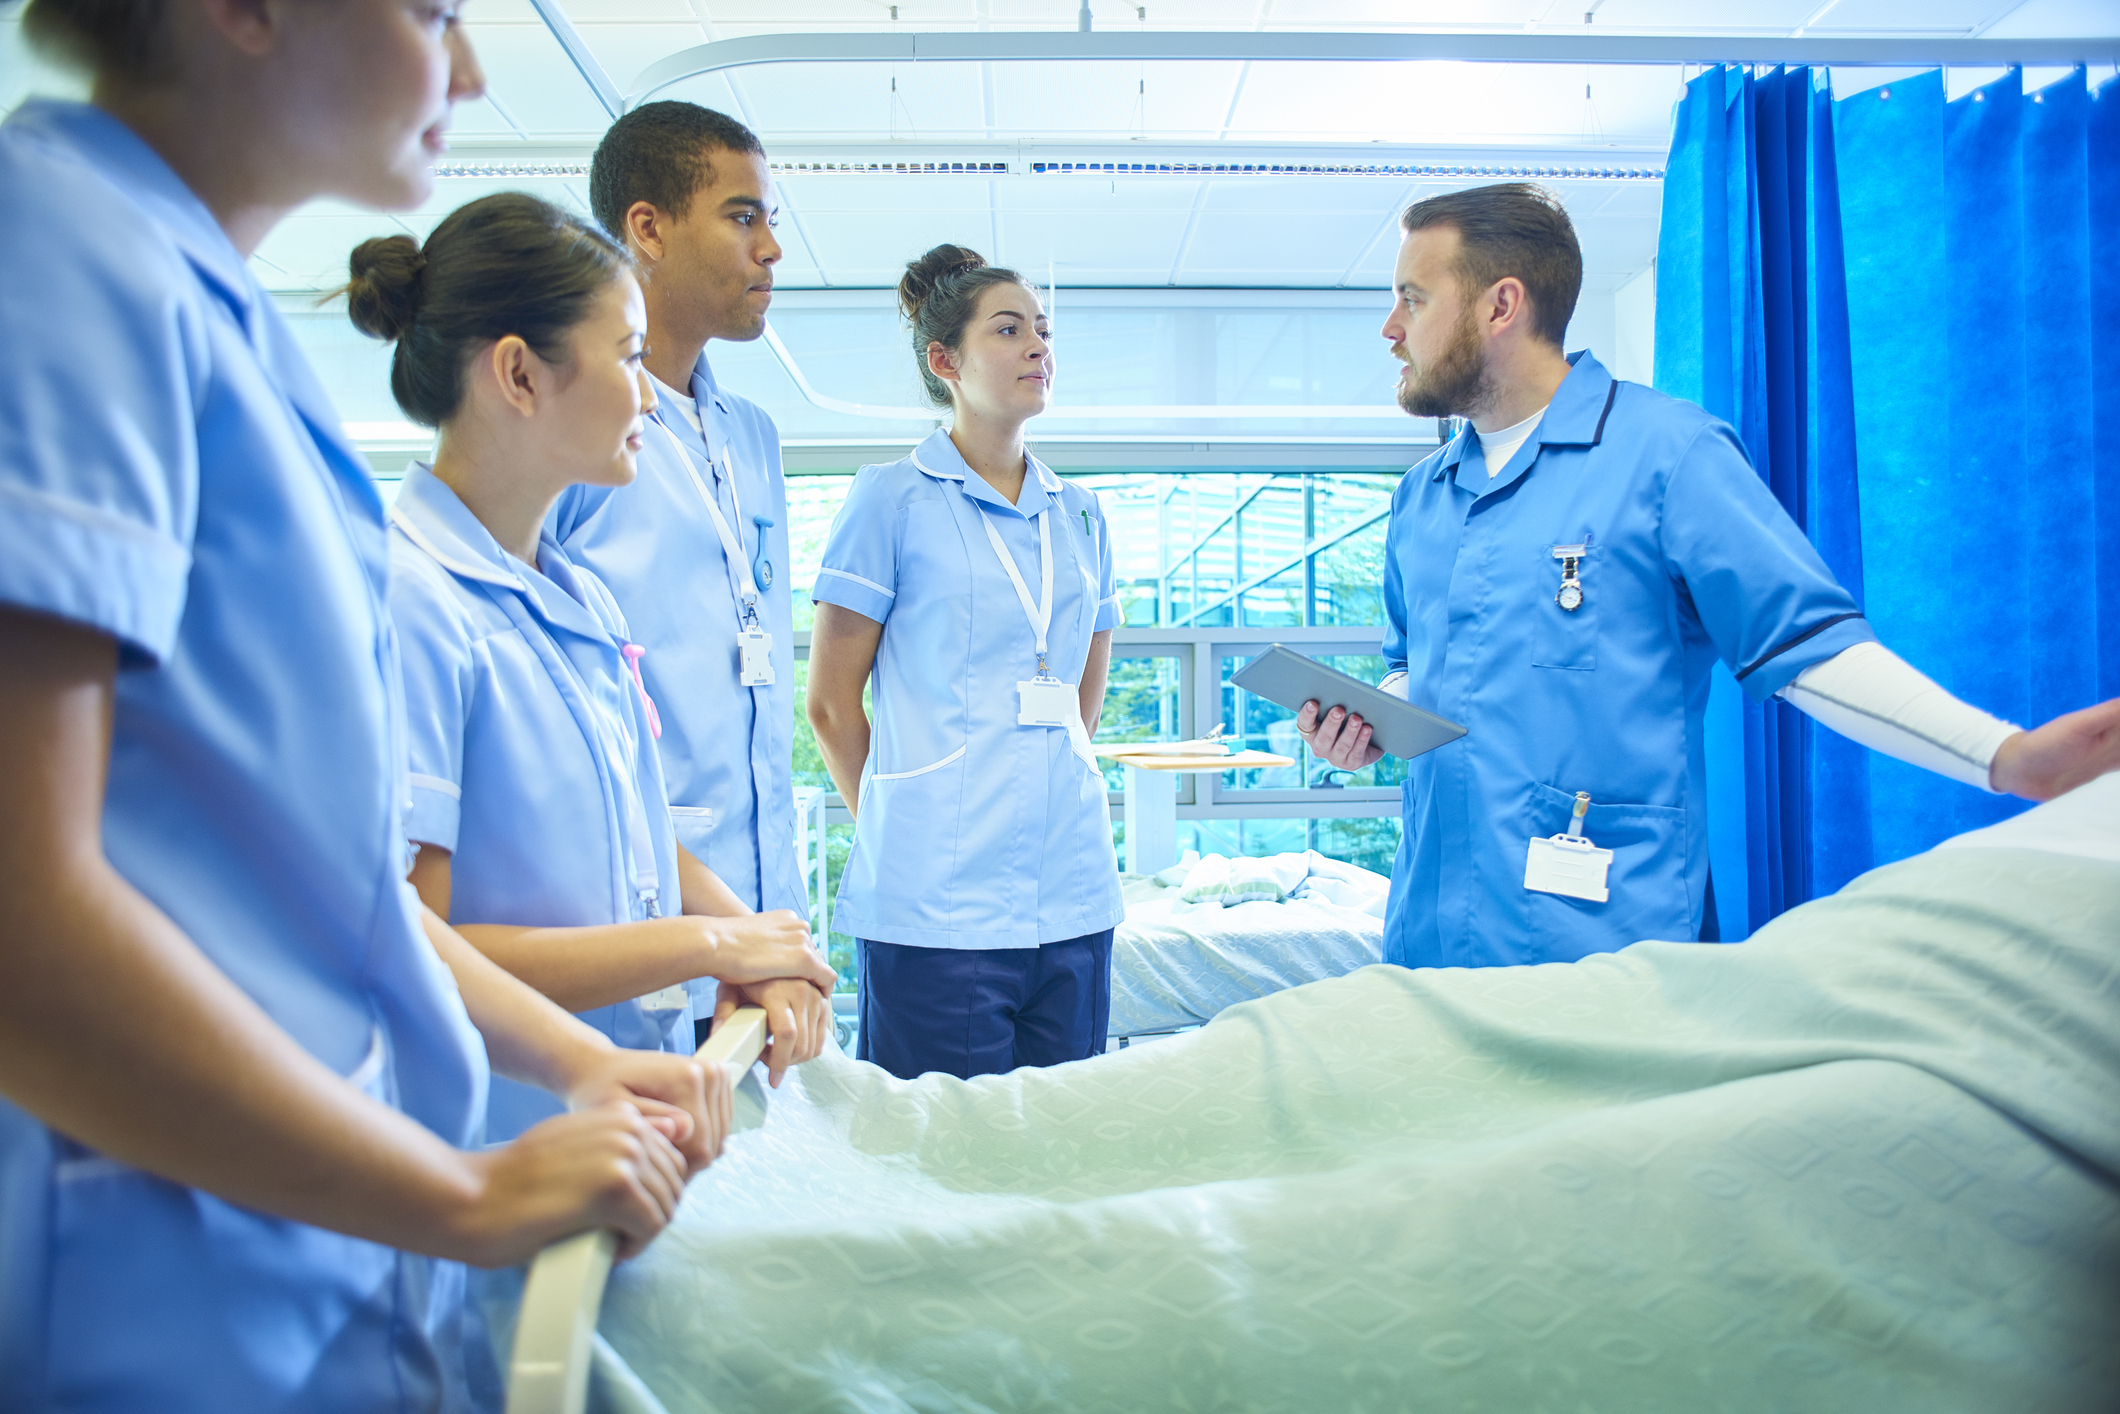 Medical schools addressing student anxiety, burnout and